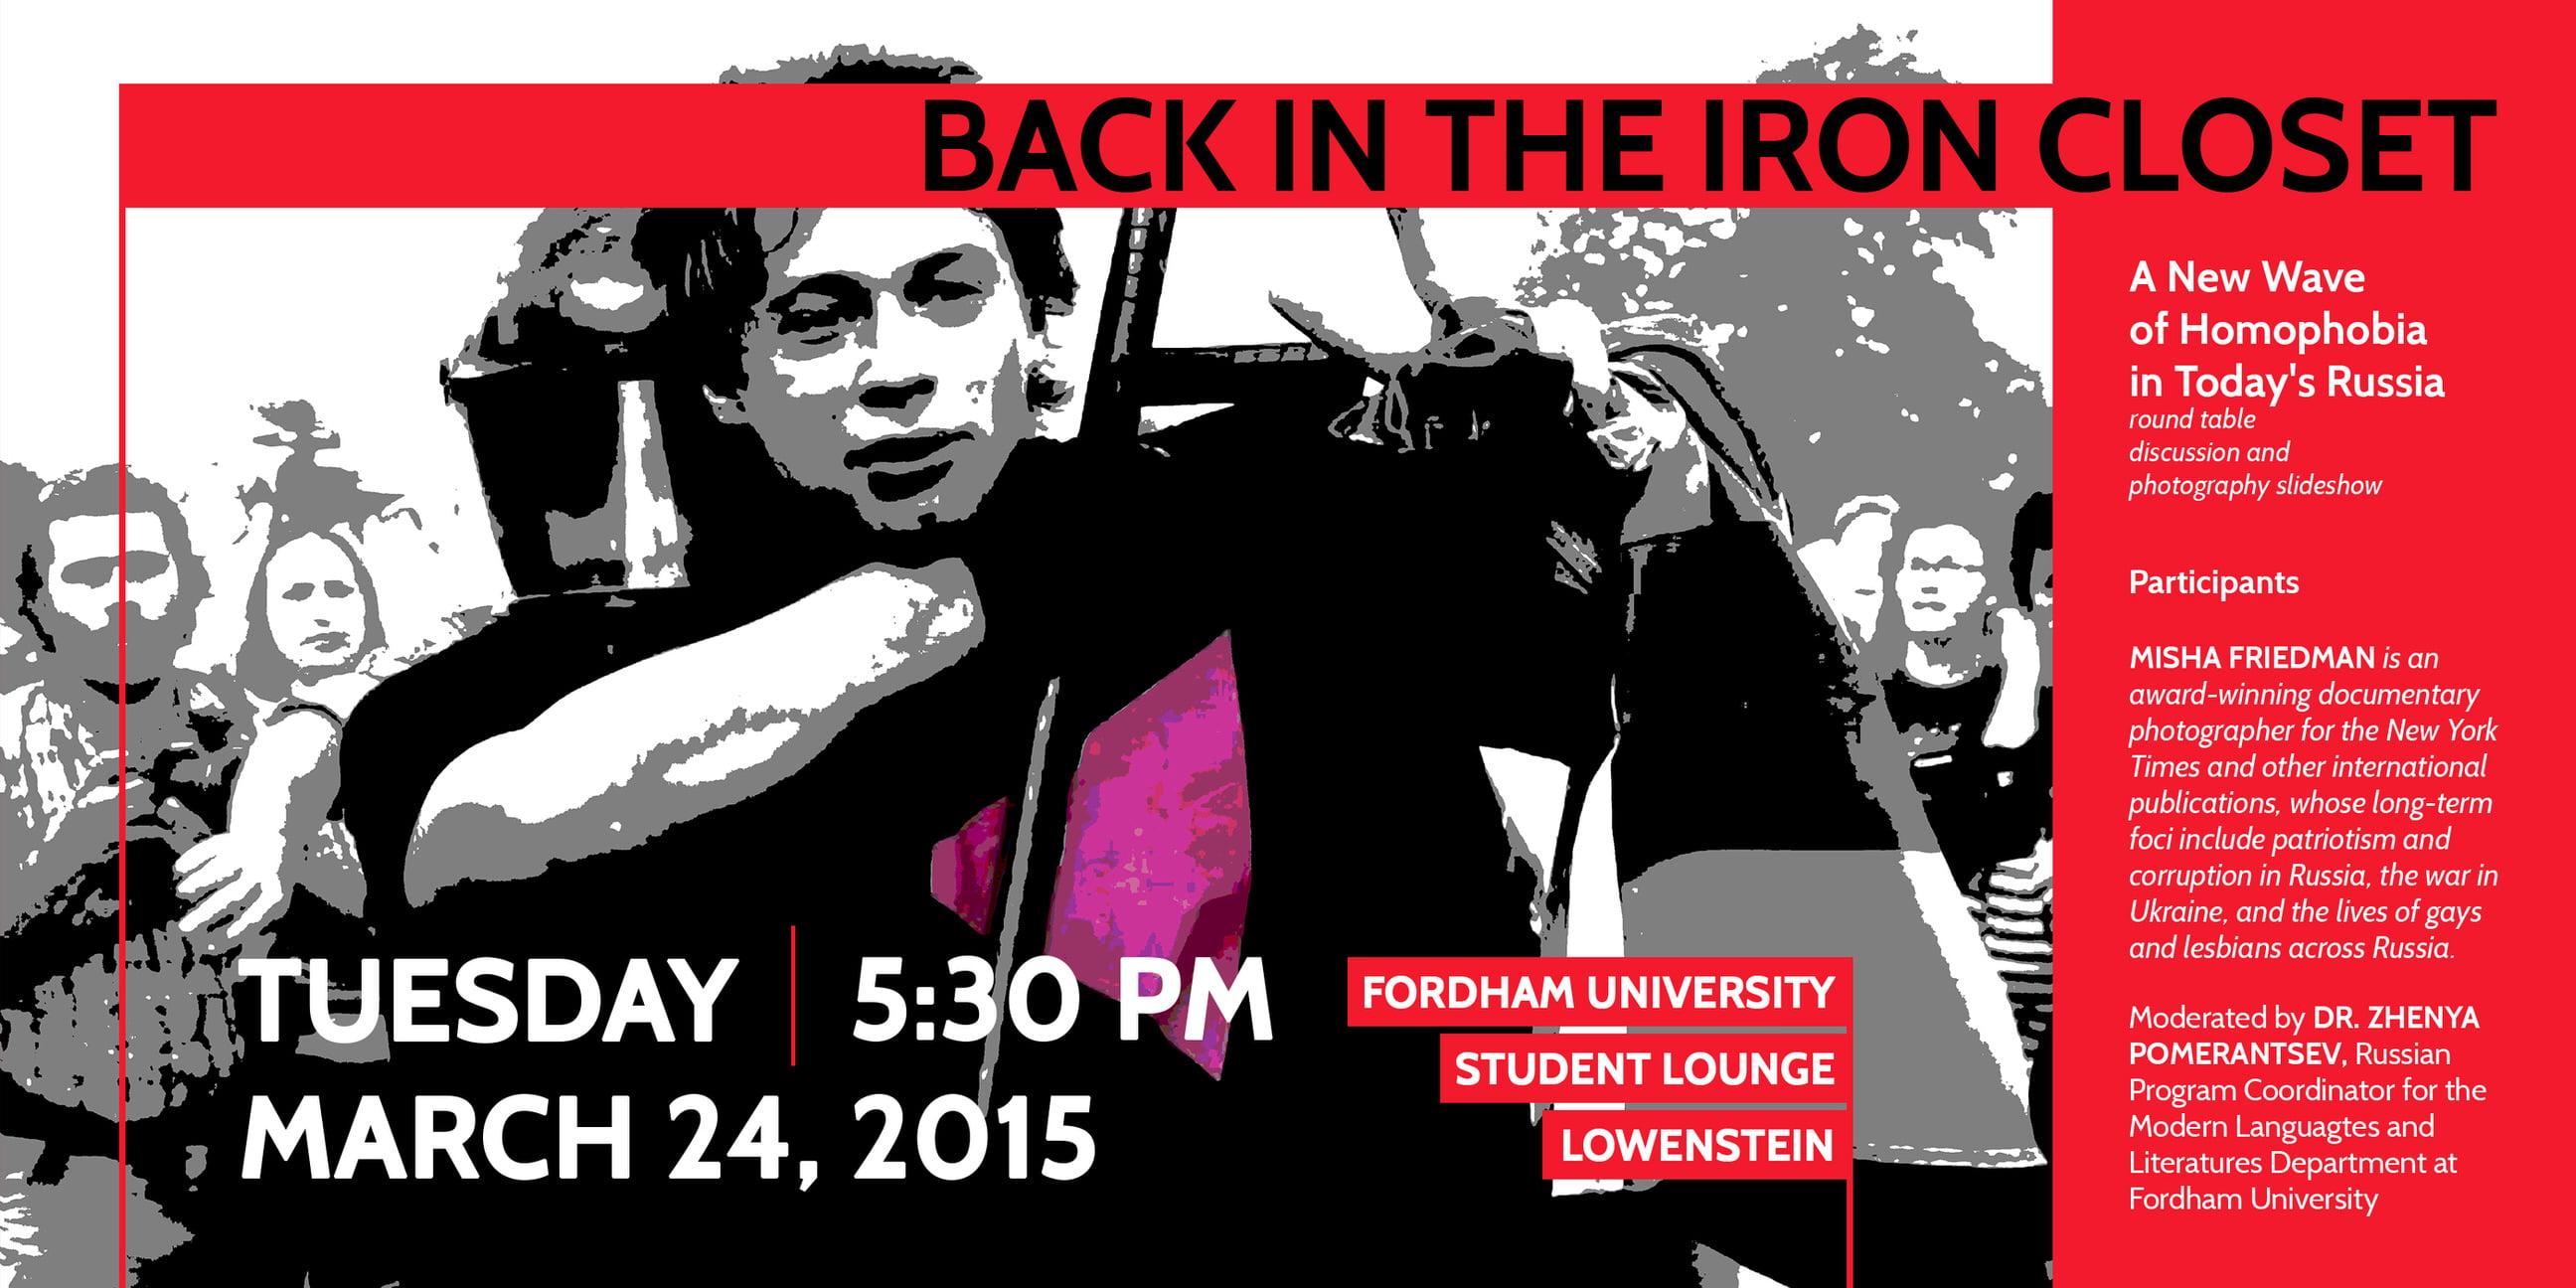 Back In The Iron Closet Round Table Discussion at Fordham University